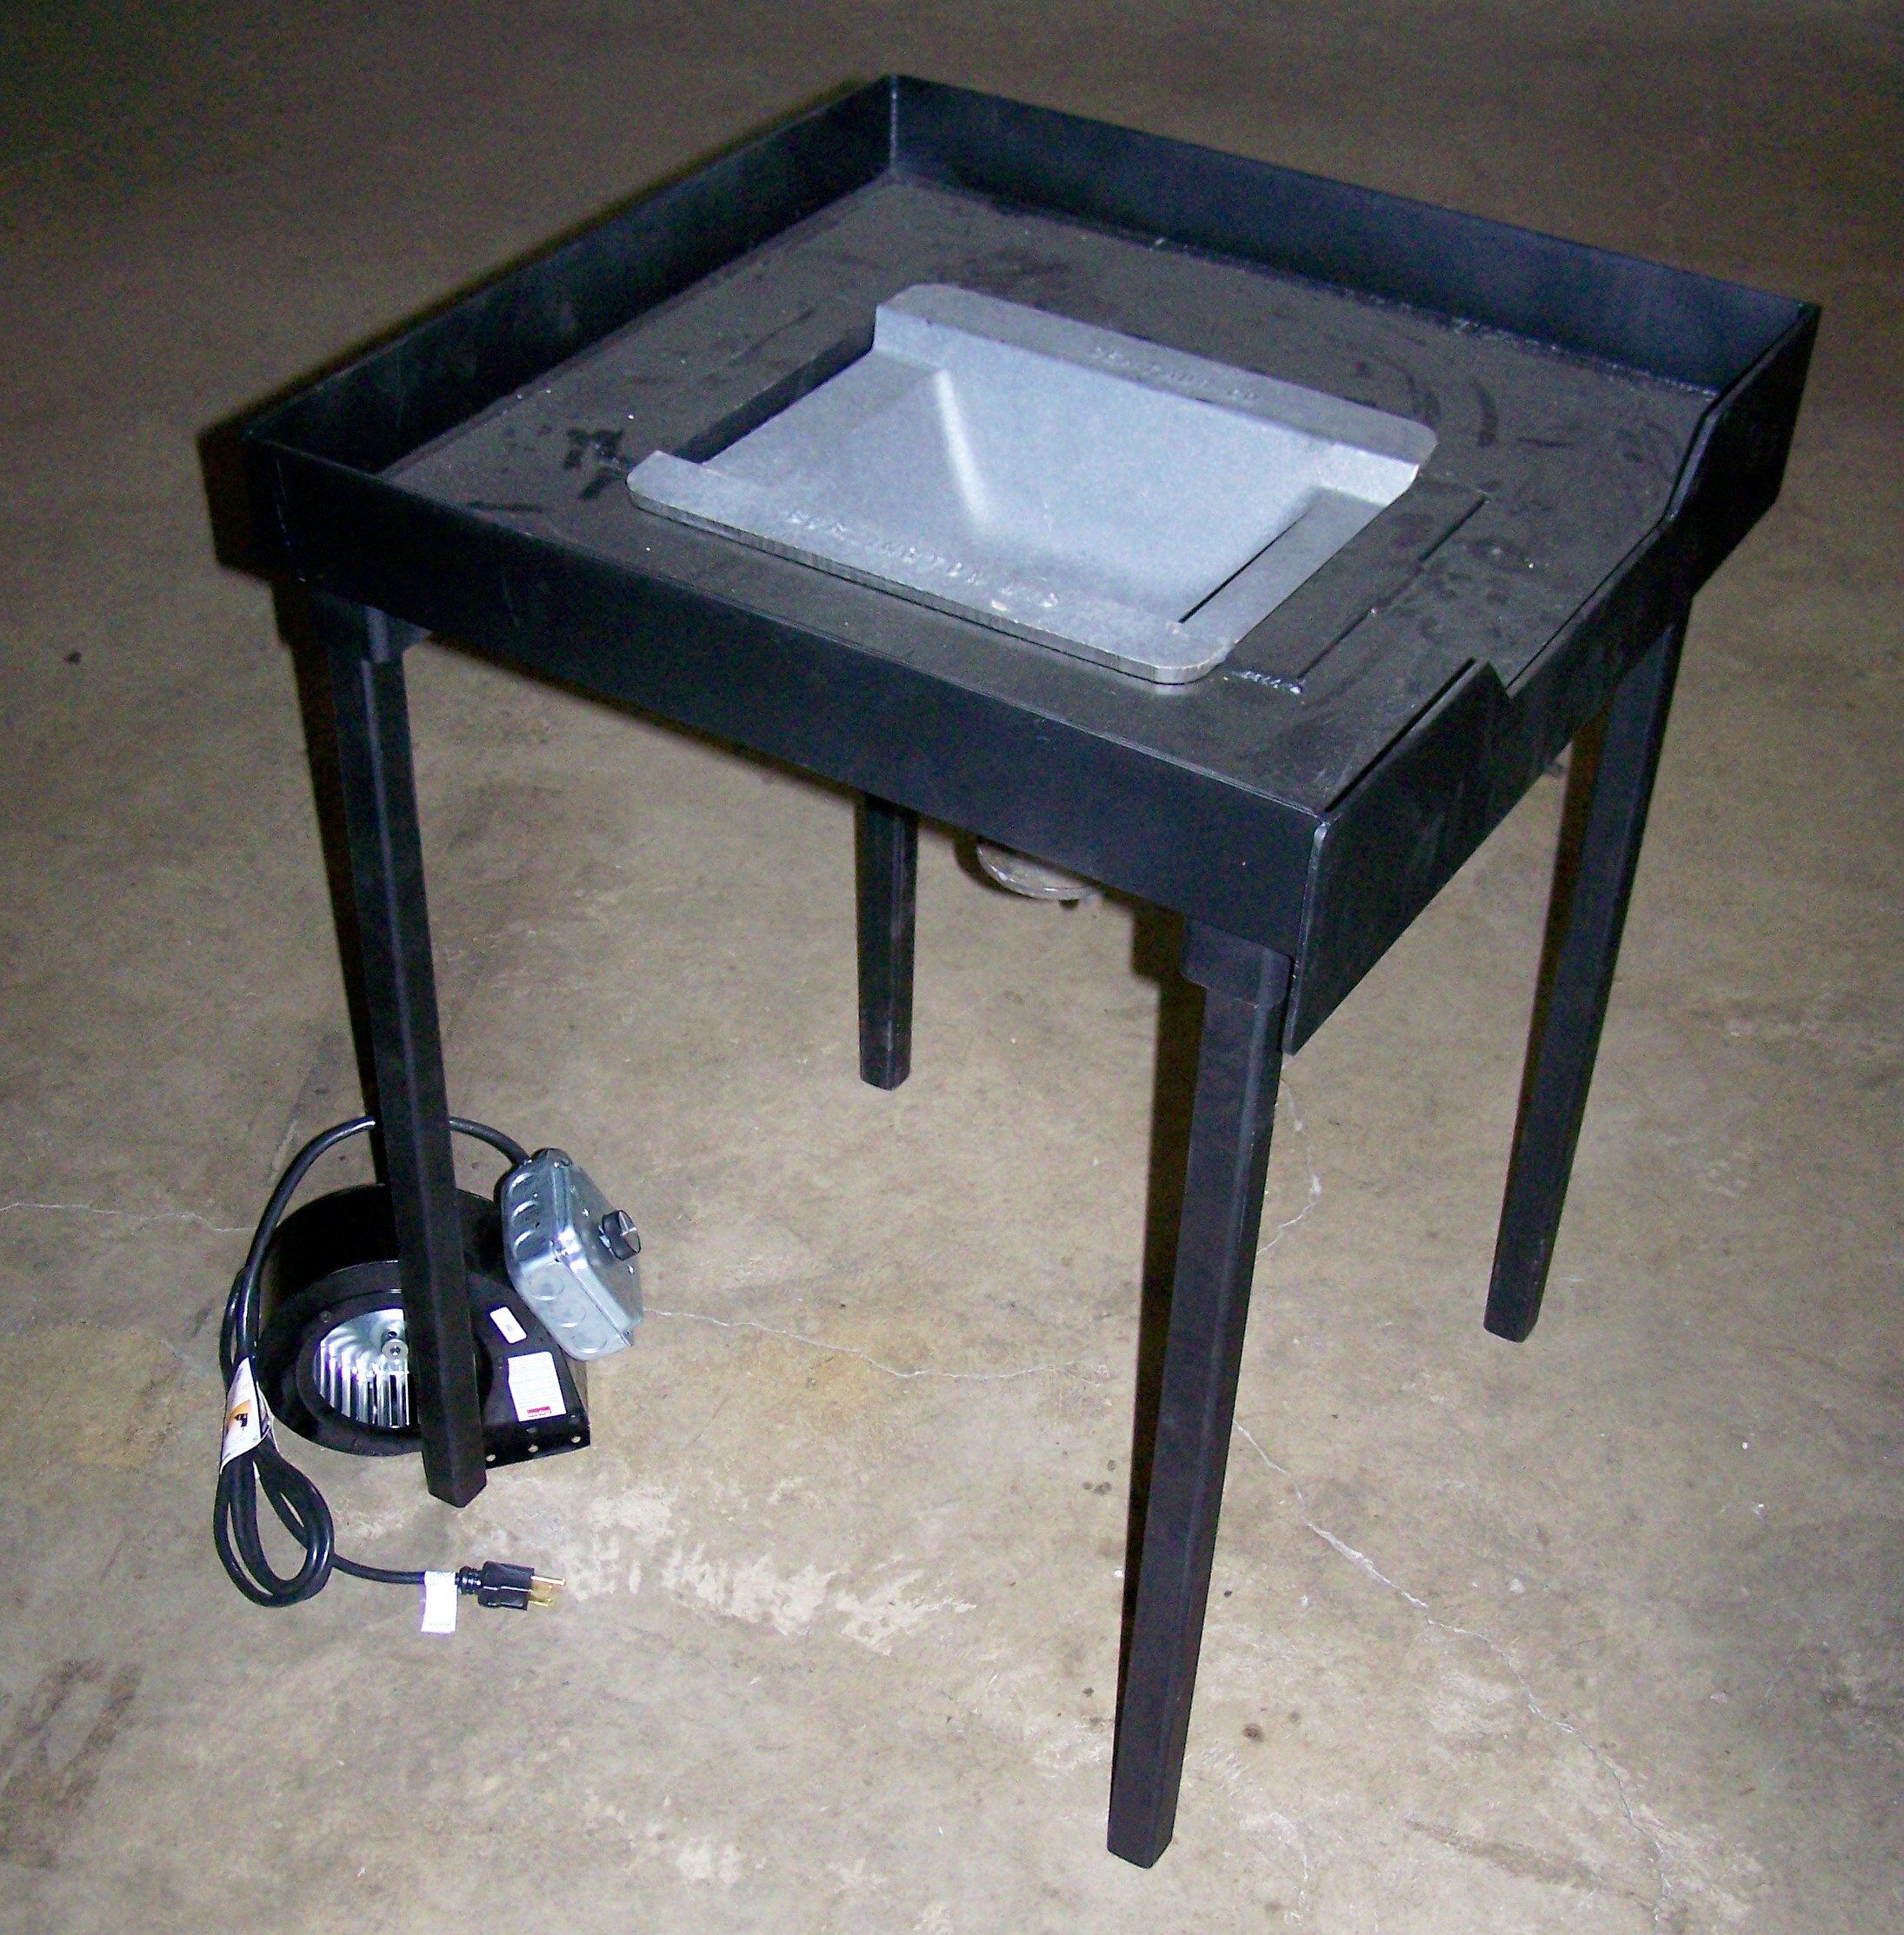 Centaur Portable Coal Forge - Eligible for Free Shipping.  See Home Page for full details